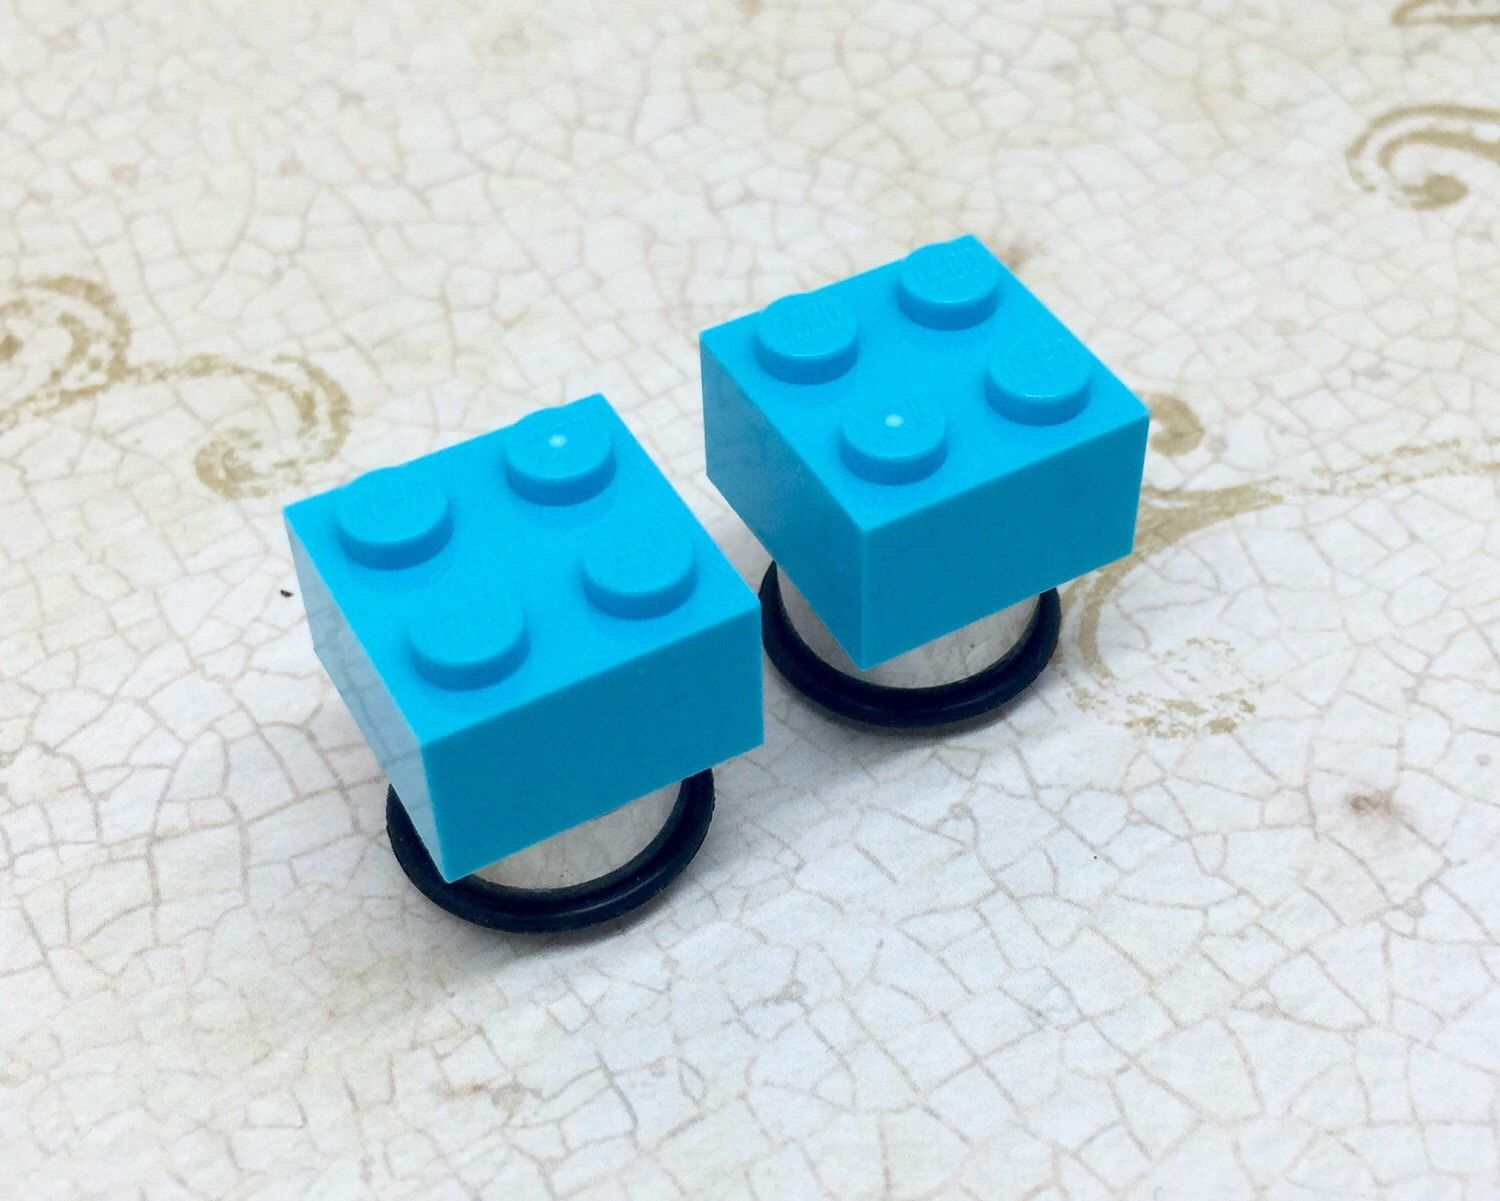 Gauging or stretching your ears information and stretch gauge kits - Authentic Lego Pieces Plugs Gauges Stretchers Earrings Stretched Gauged Ears 2g 0g 00g